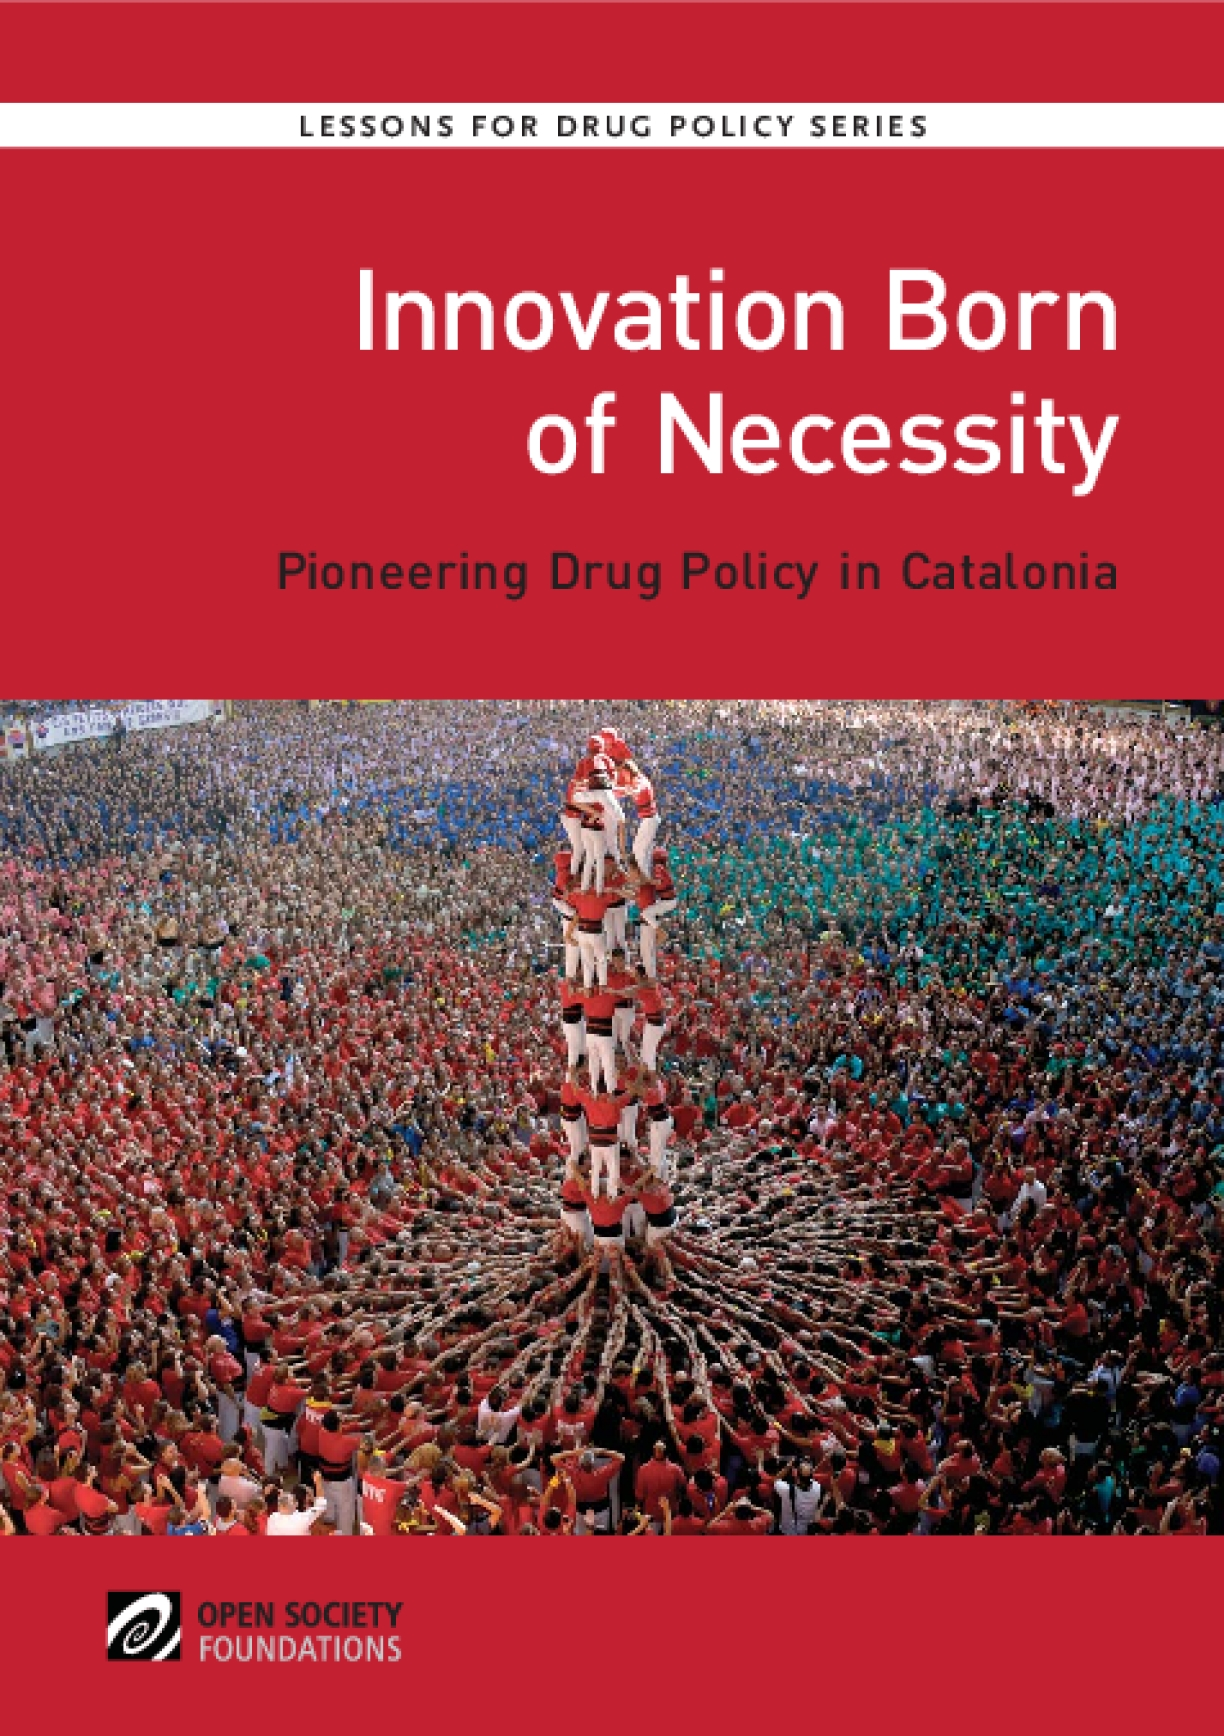 Innovation Born of Necessity: Pioneering Drug Policy in Catalonia